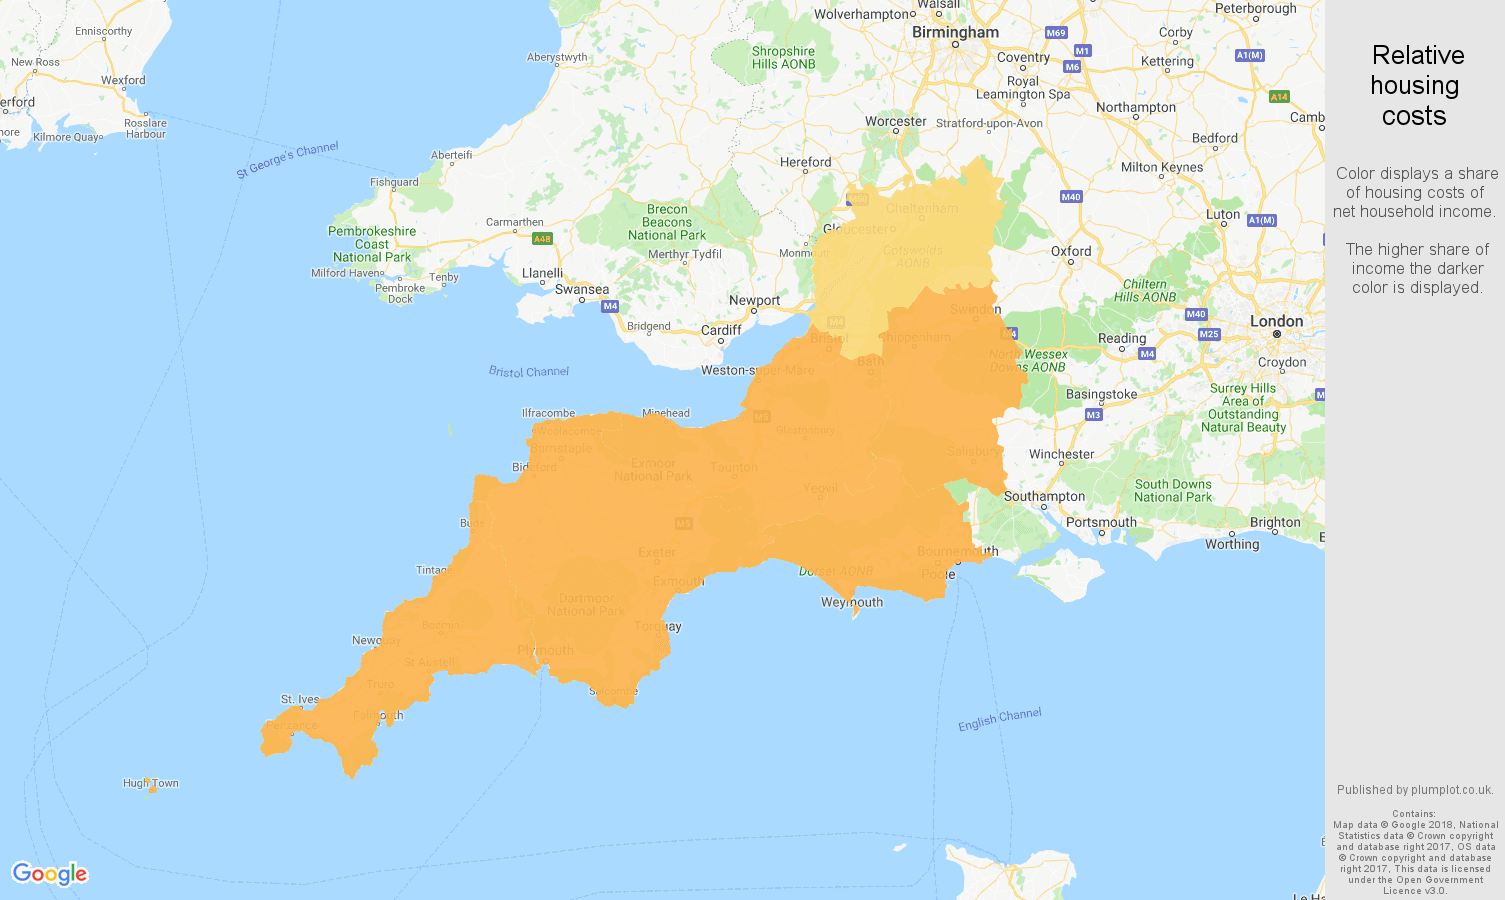 South West relative housing costs map